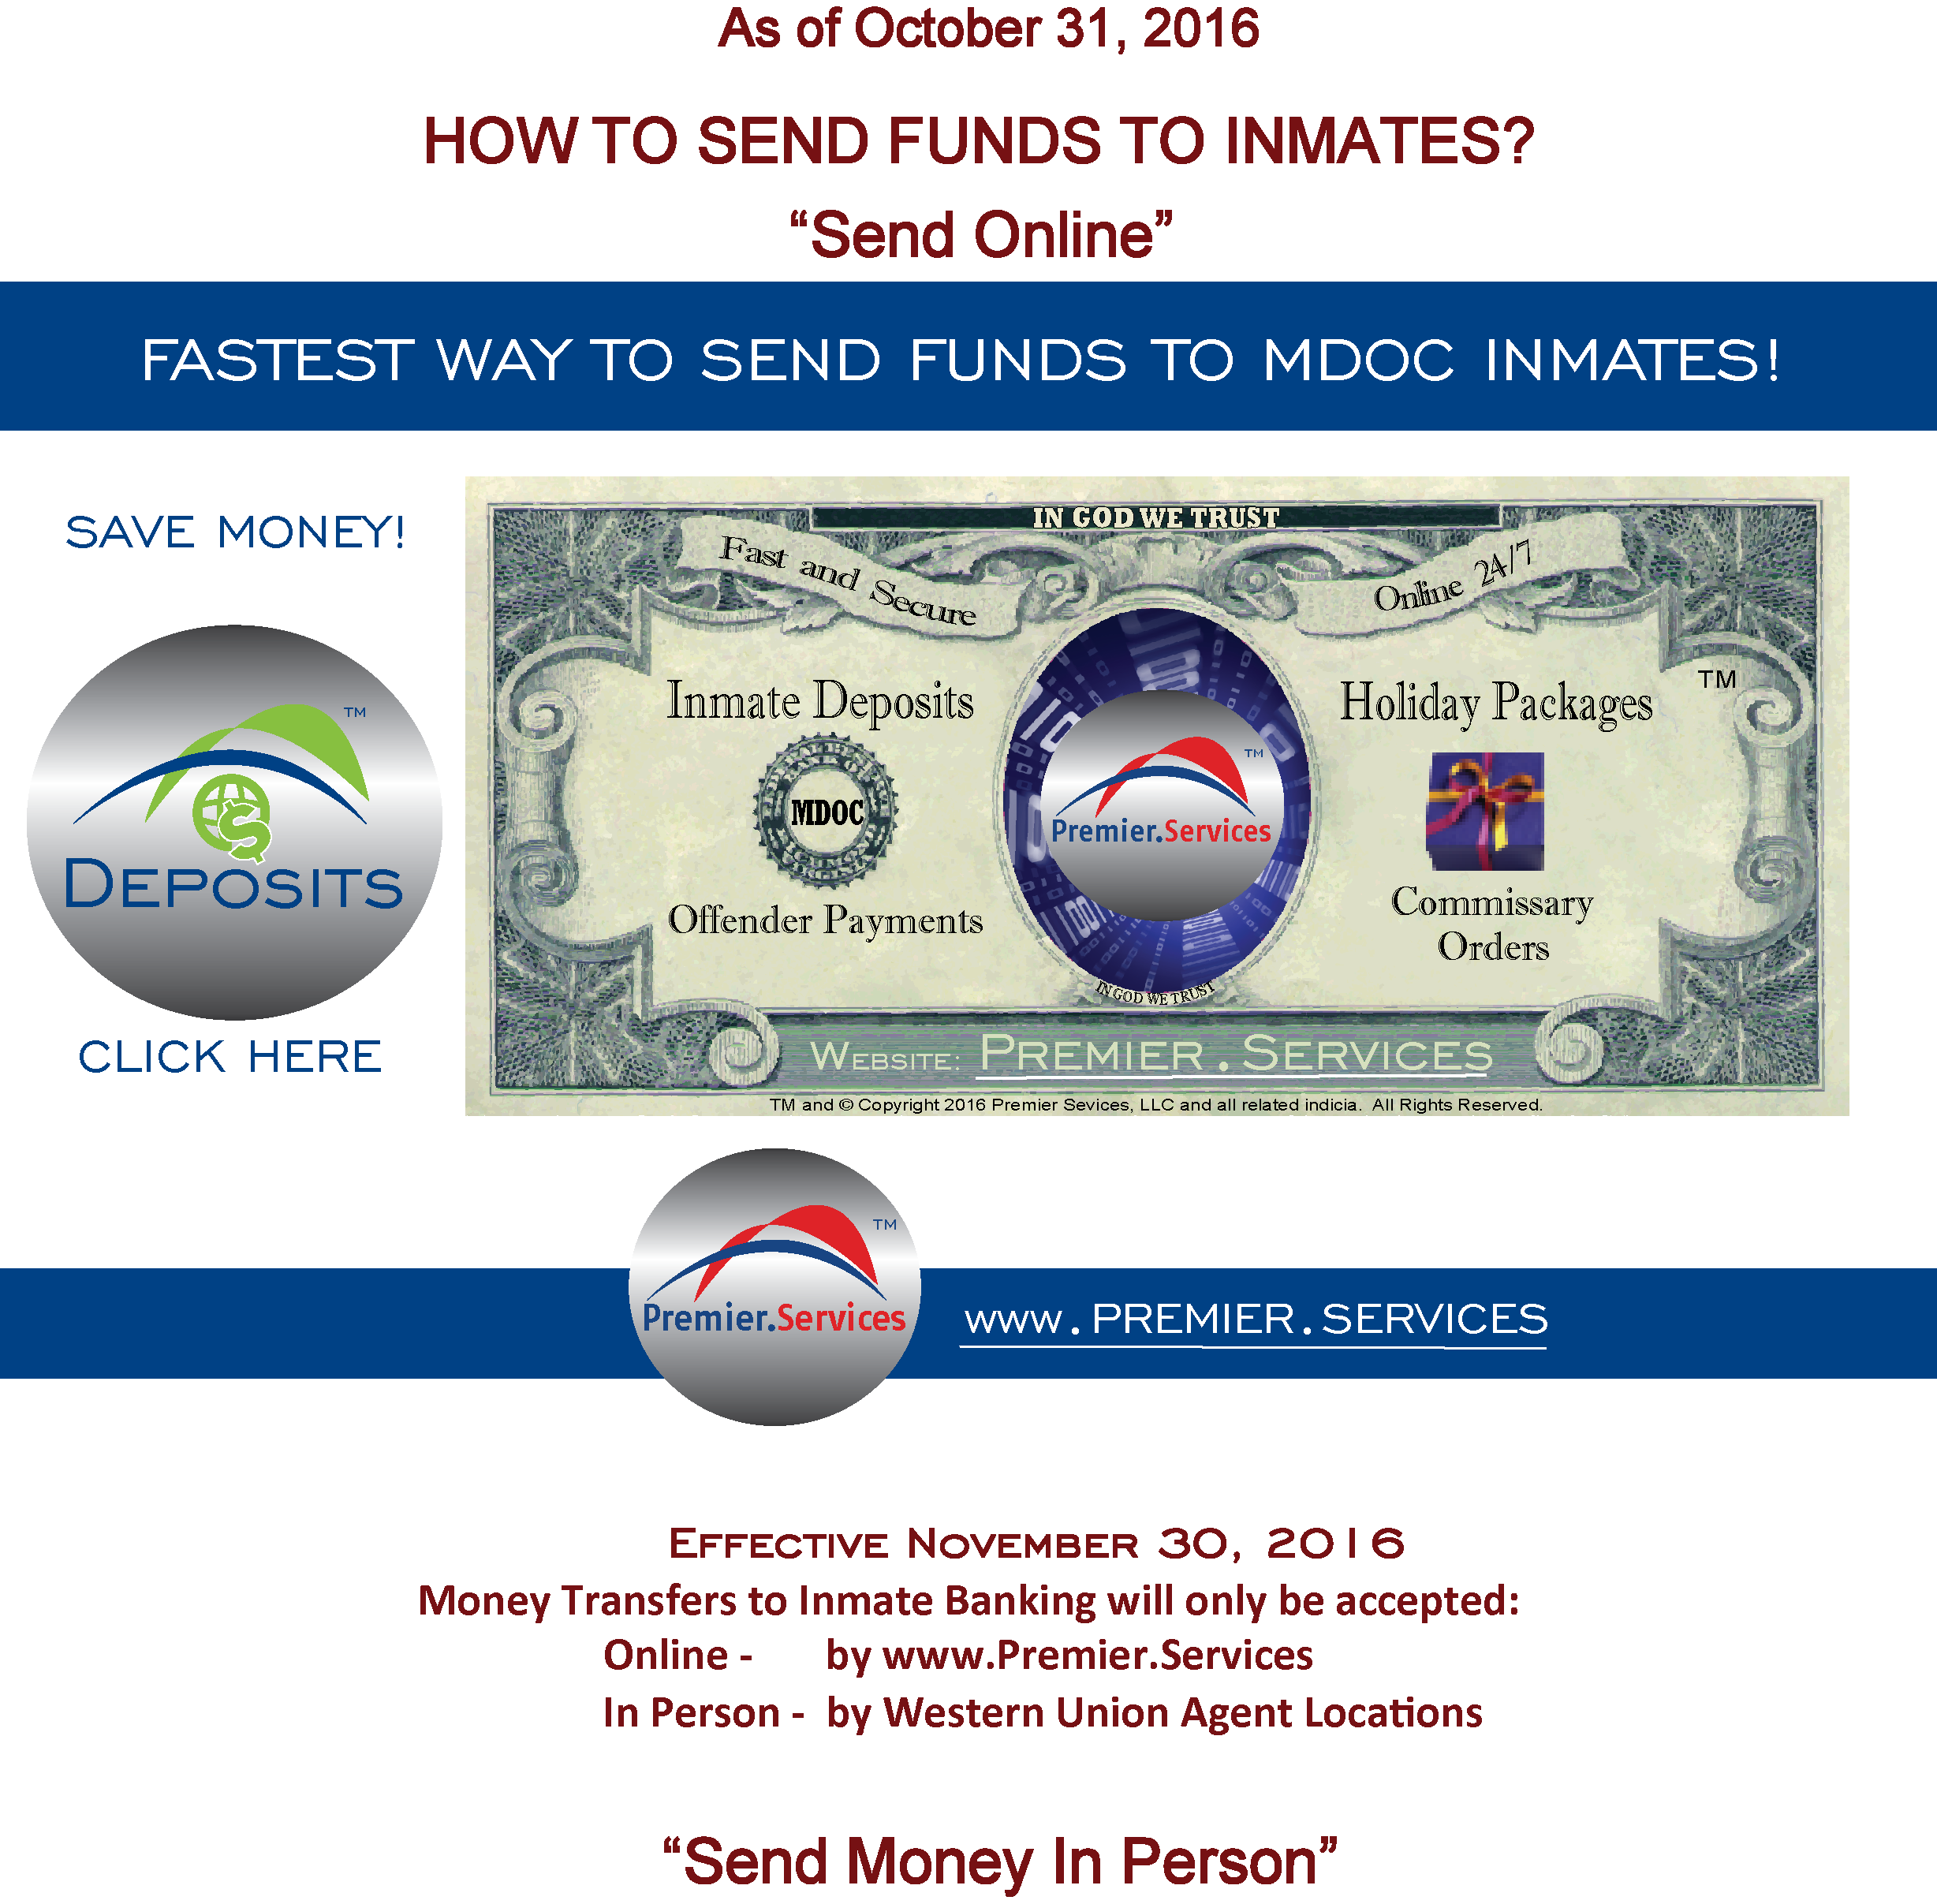 How to send funds to inmates ccuart Image collections